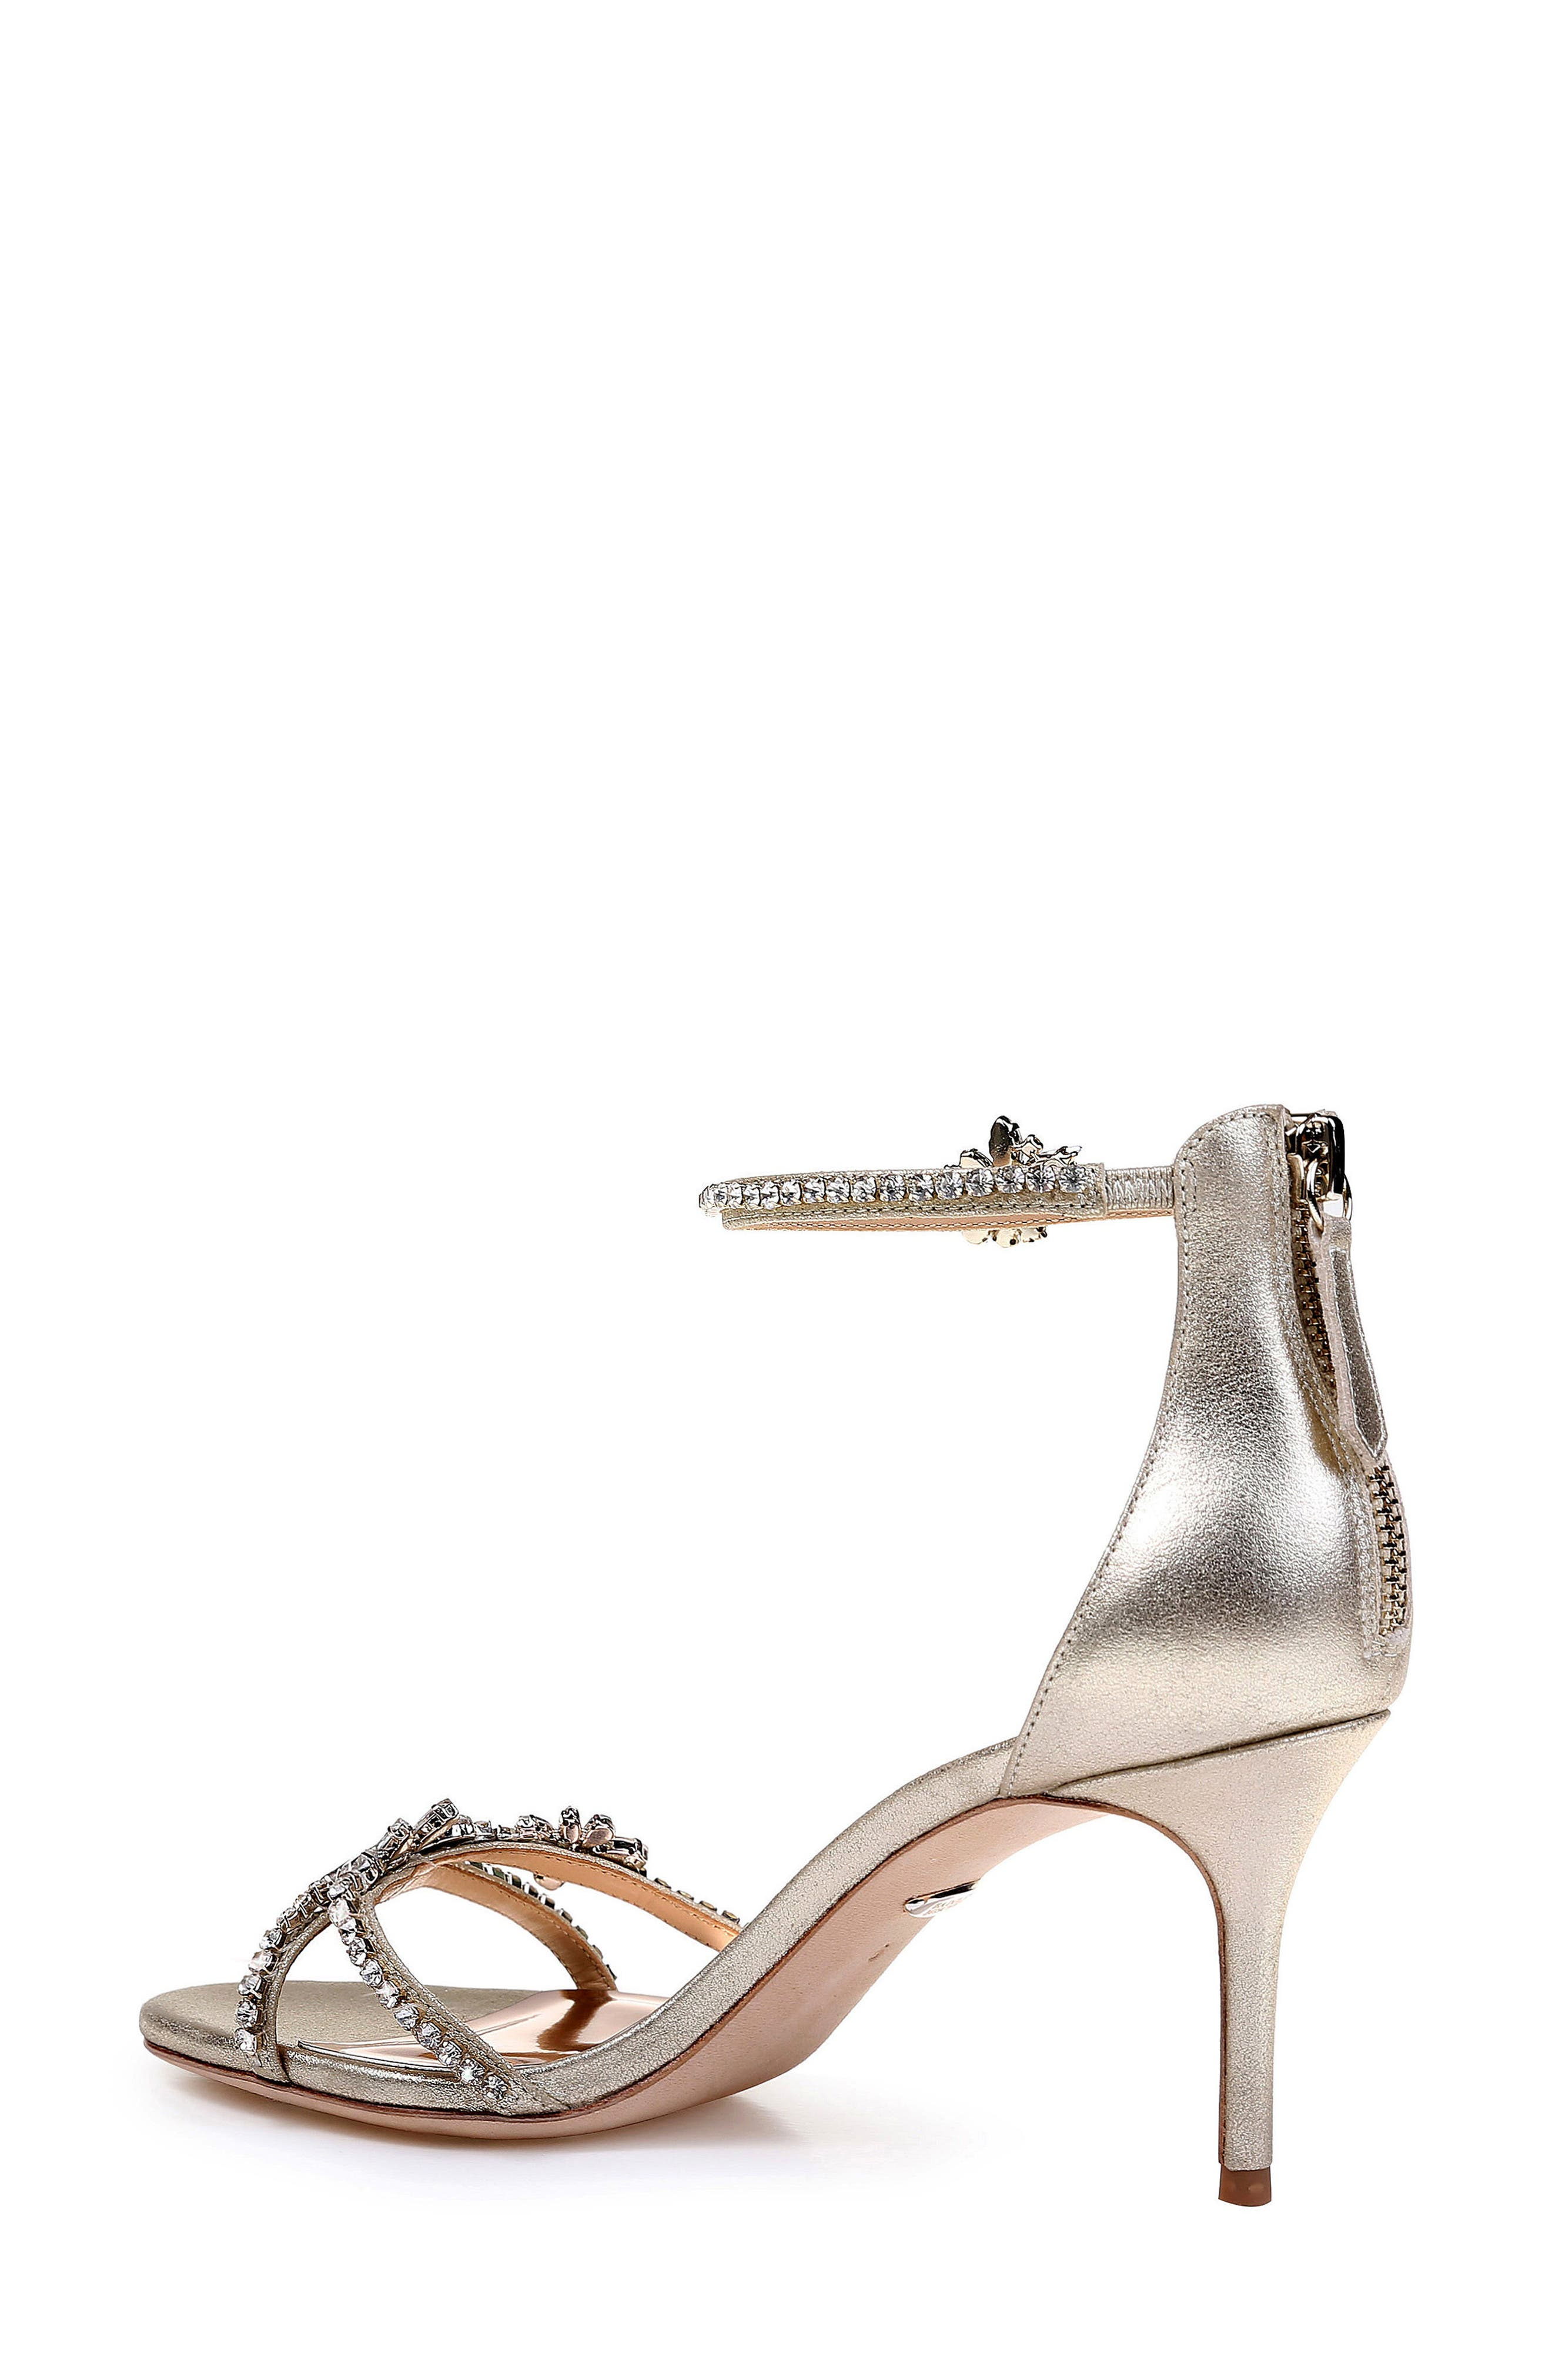 BADGLEY MISCHKA COLLECTION,                             Badgley Mischka Hobbs Ankle Strap Sandal,                             Alternate thumbnail 2, color,                             040